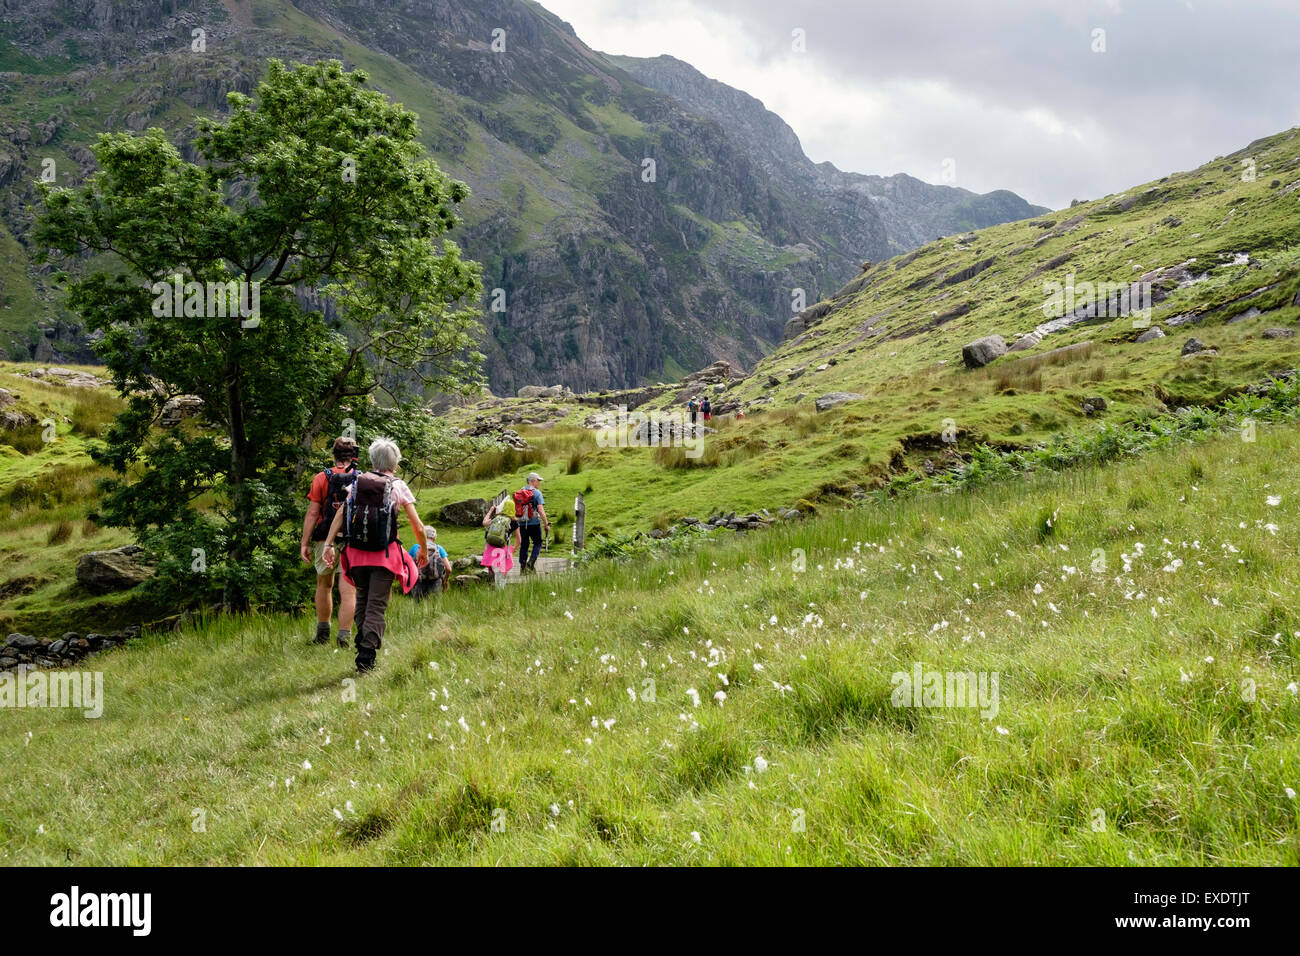 Hikers on new footpath route through Bwlch Llanberis Pass in mountains of Snowdonia National Park, Gwynedd, North - Stock Image